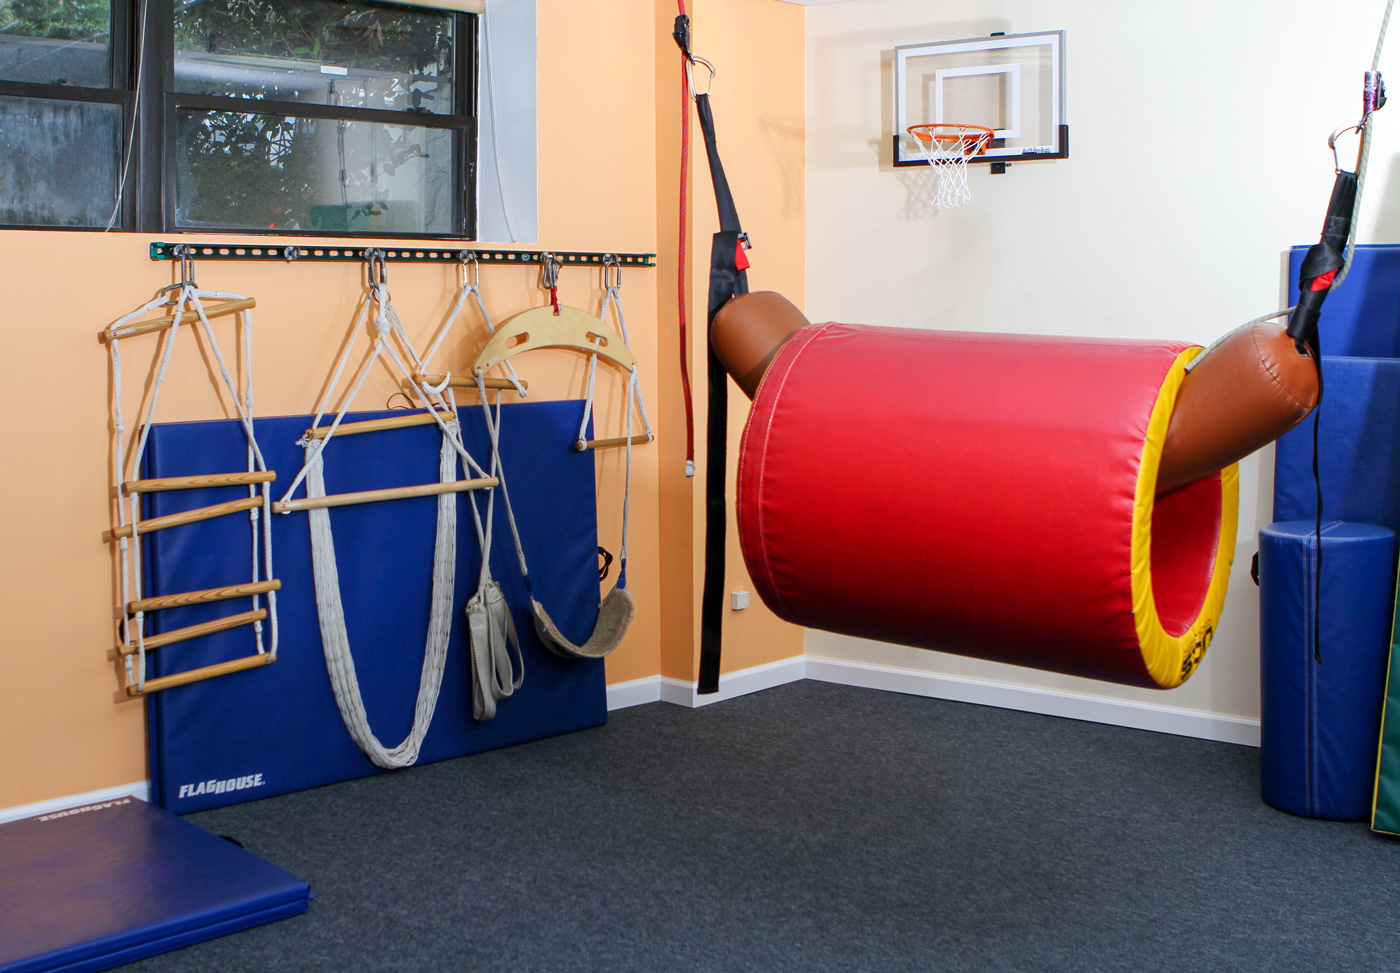 Equipment pediatric physical therapy - Equipment Pediatric Physical Therapy 29